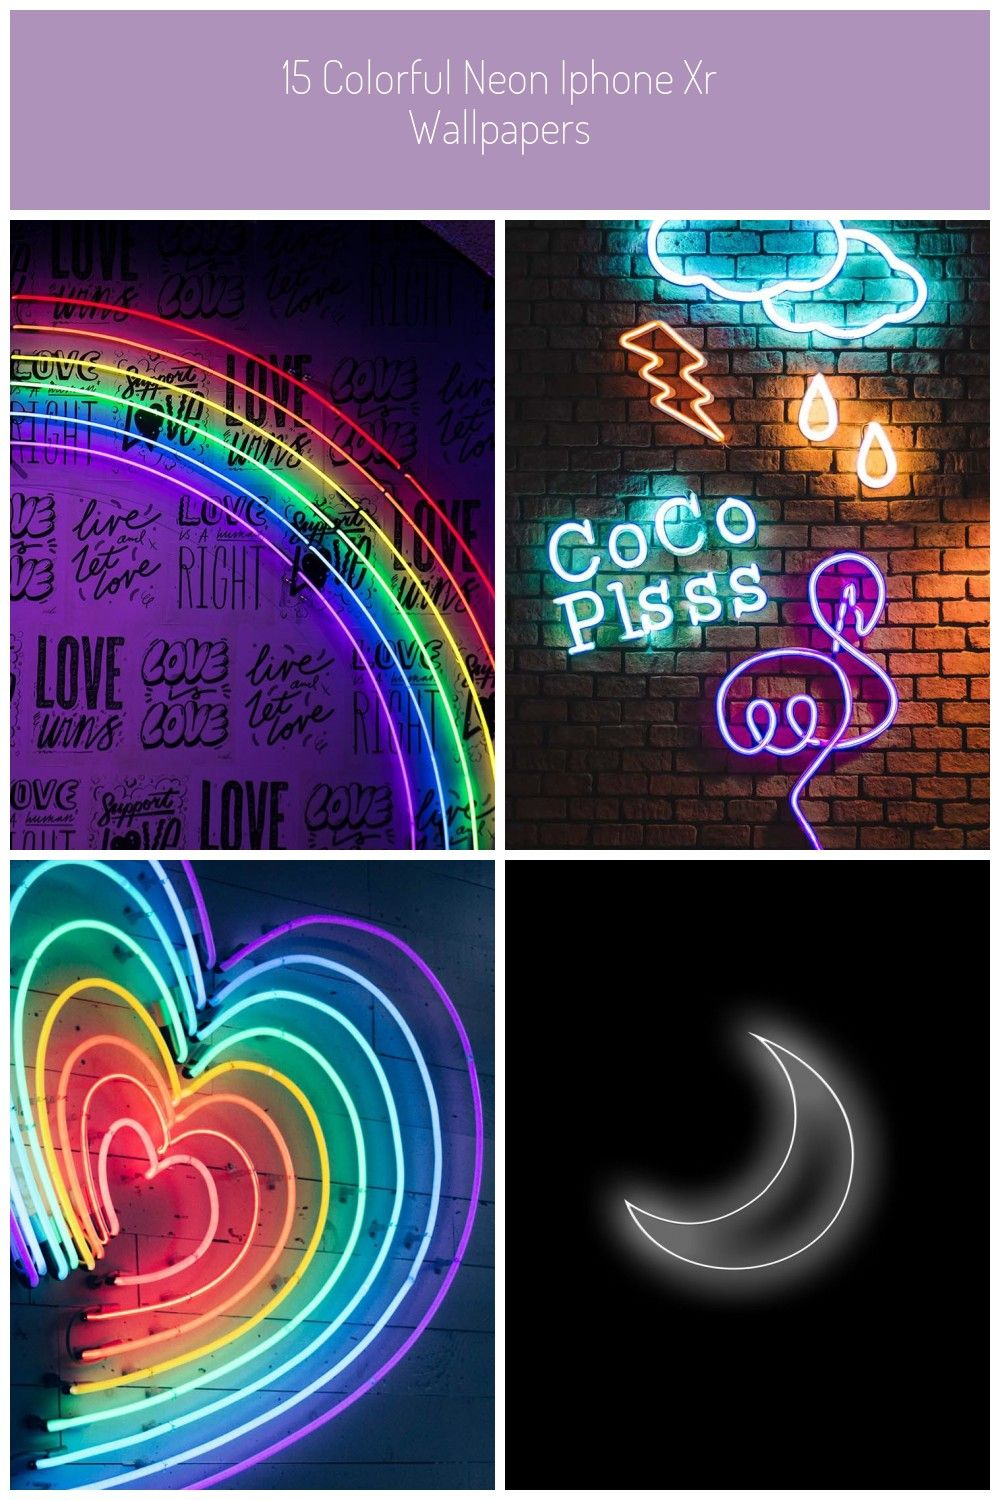 Neon iPhone Wallpapers by Preppy Wallpapers colors neon